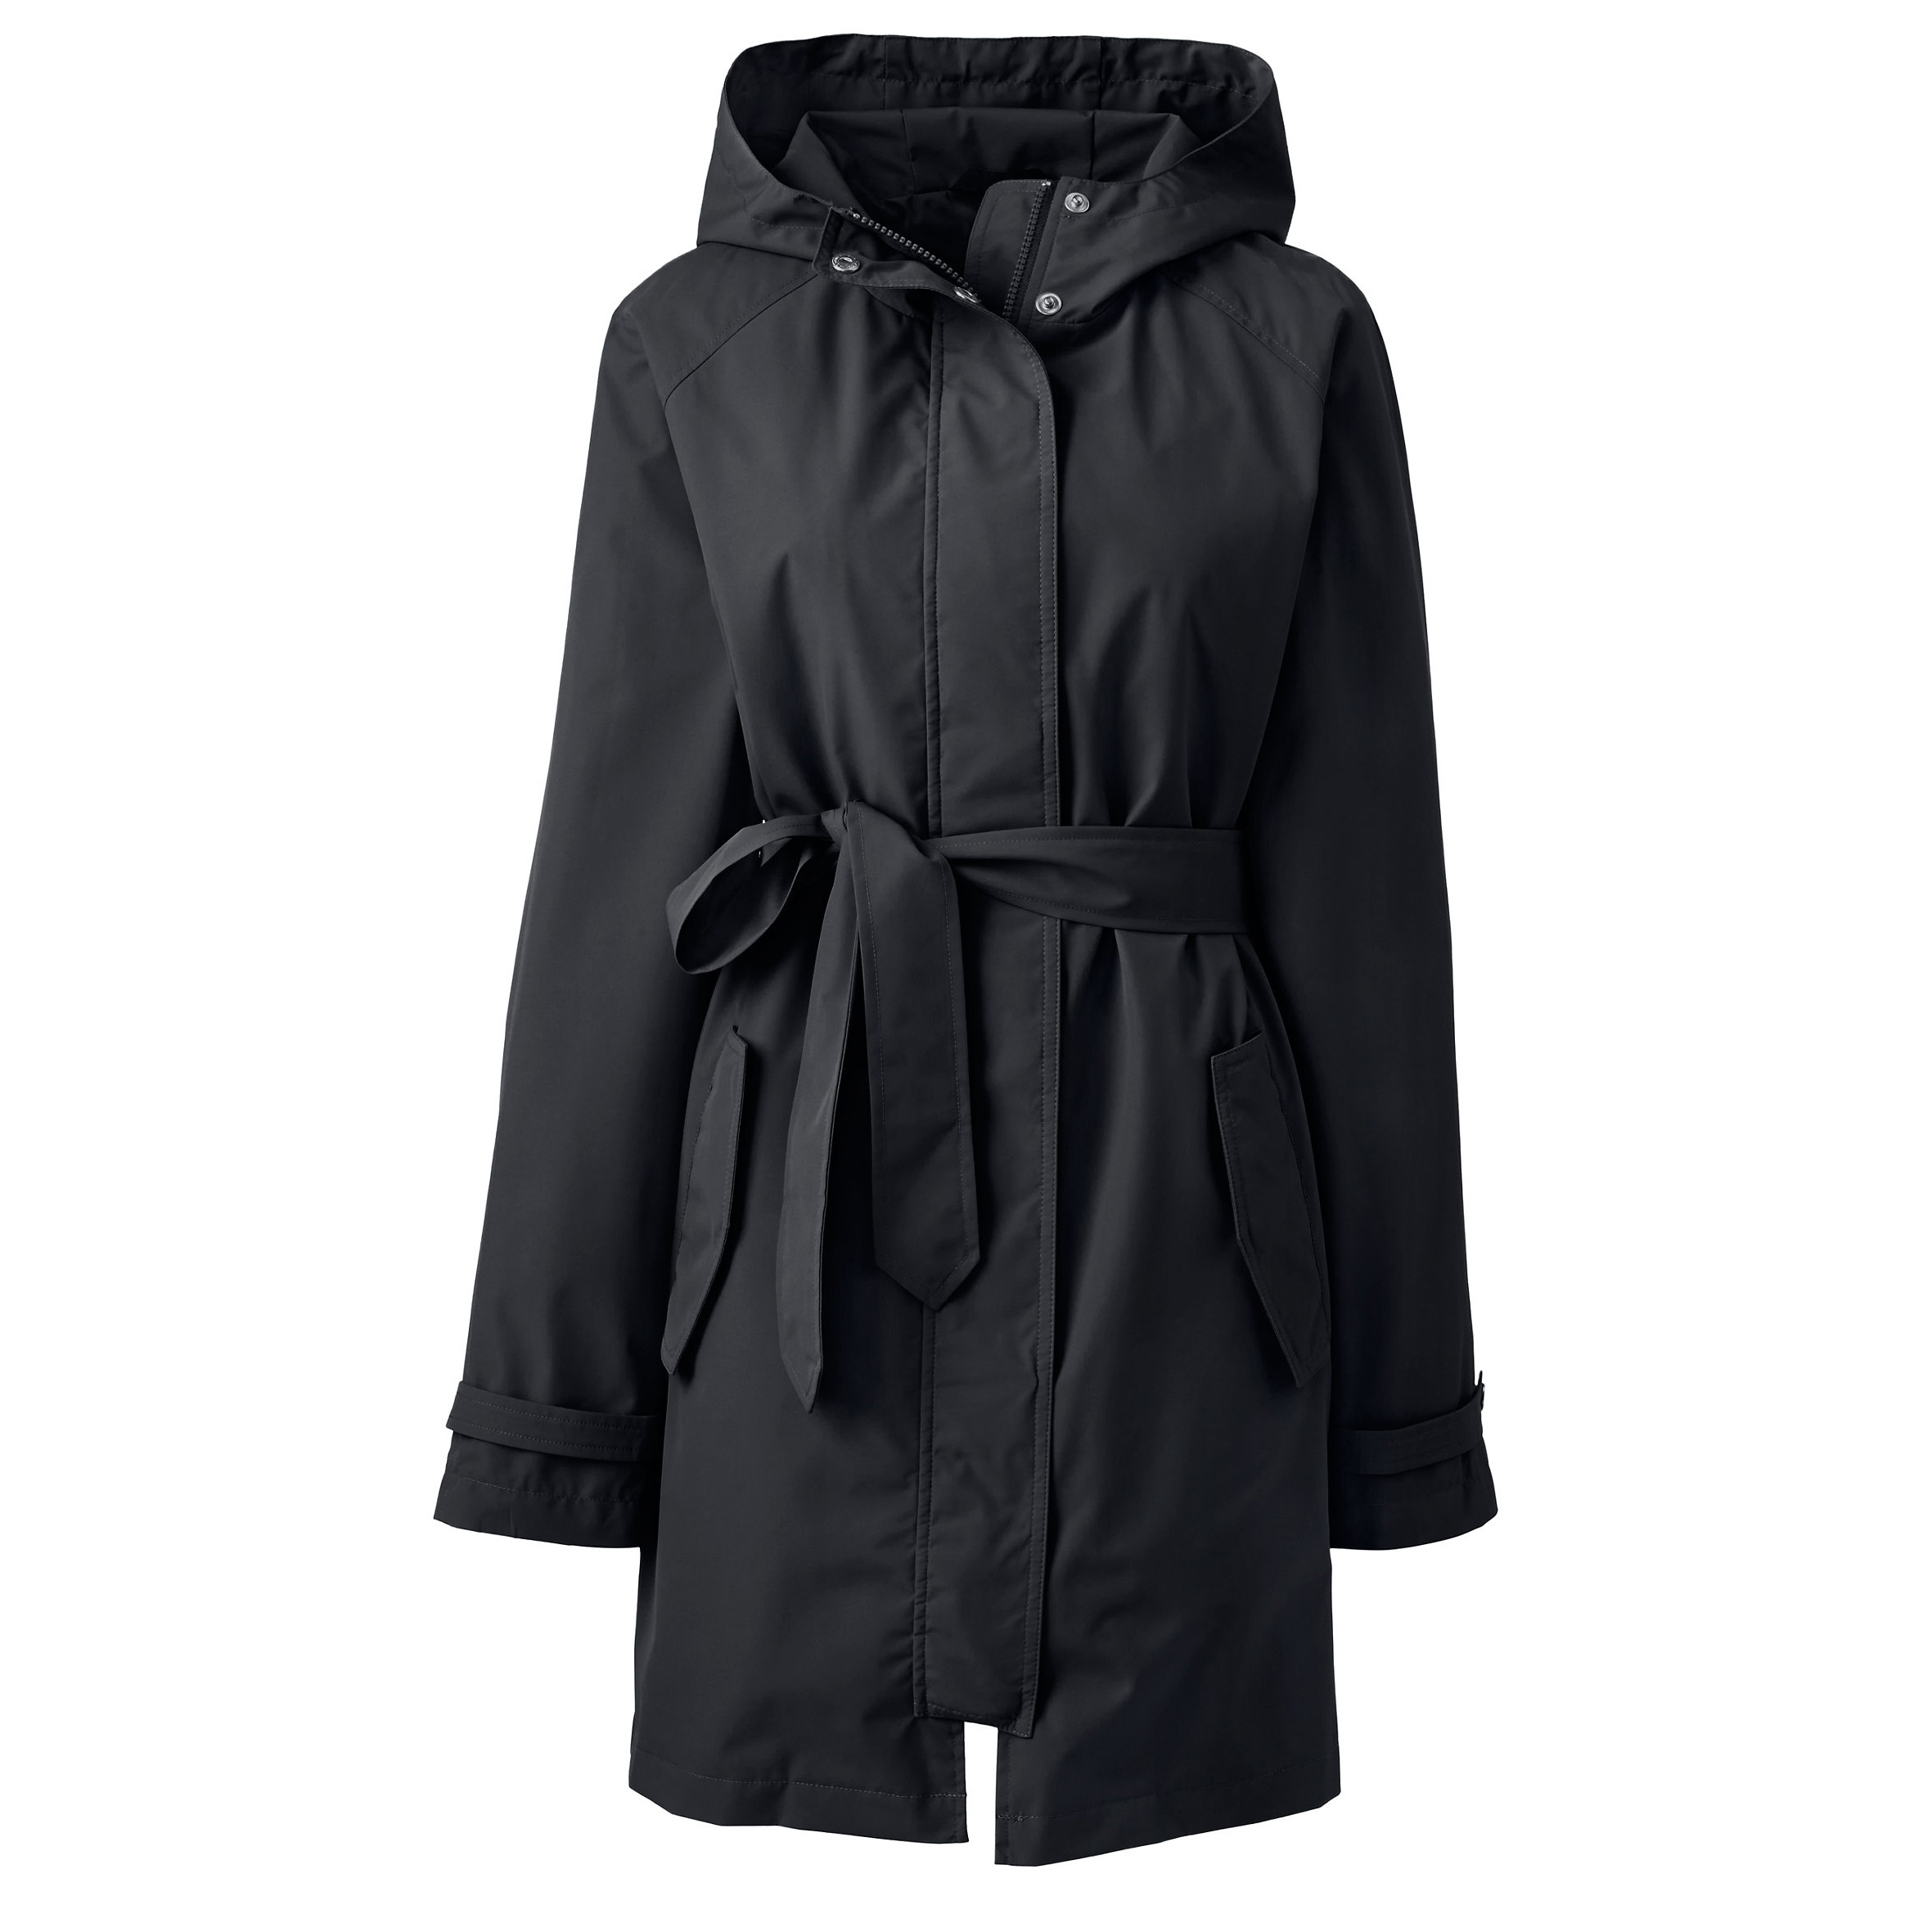 Warmest winter coats affordable